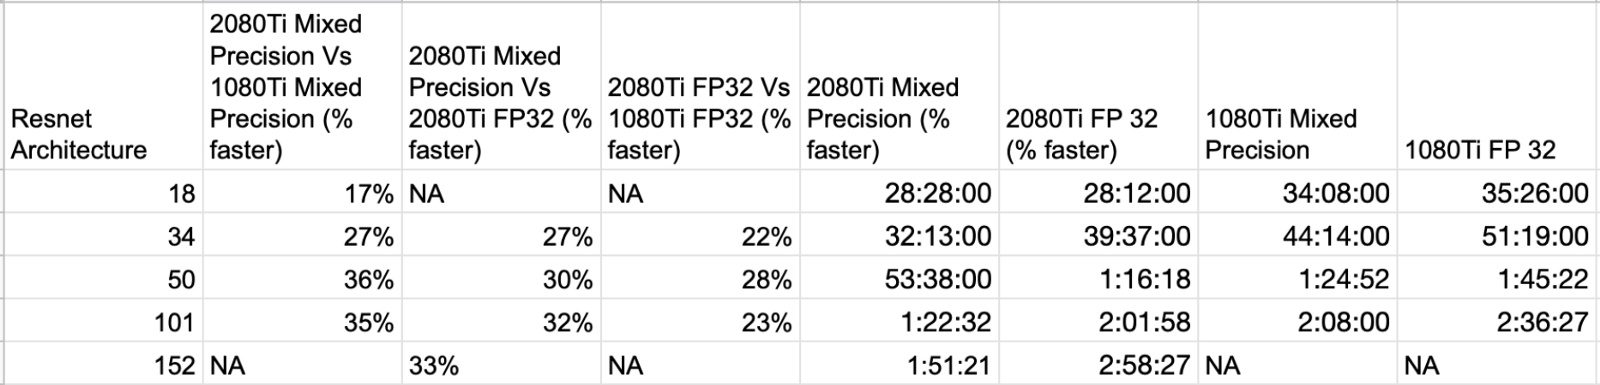 RTX 2080Ti Vs GTX 1080Ti: FastAI Mixed Precision training